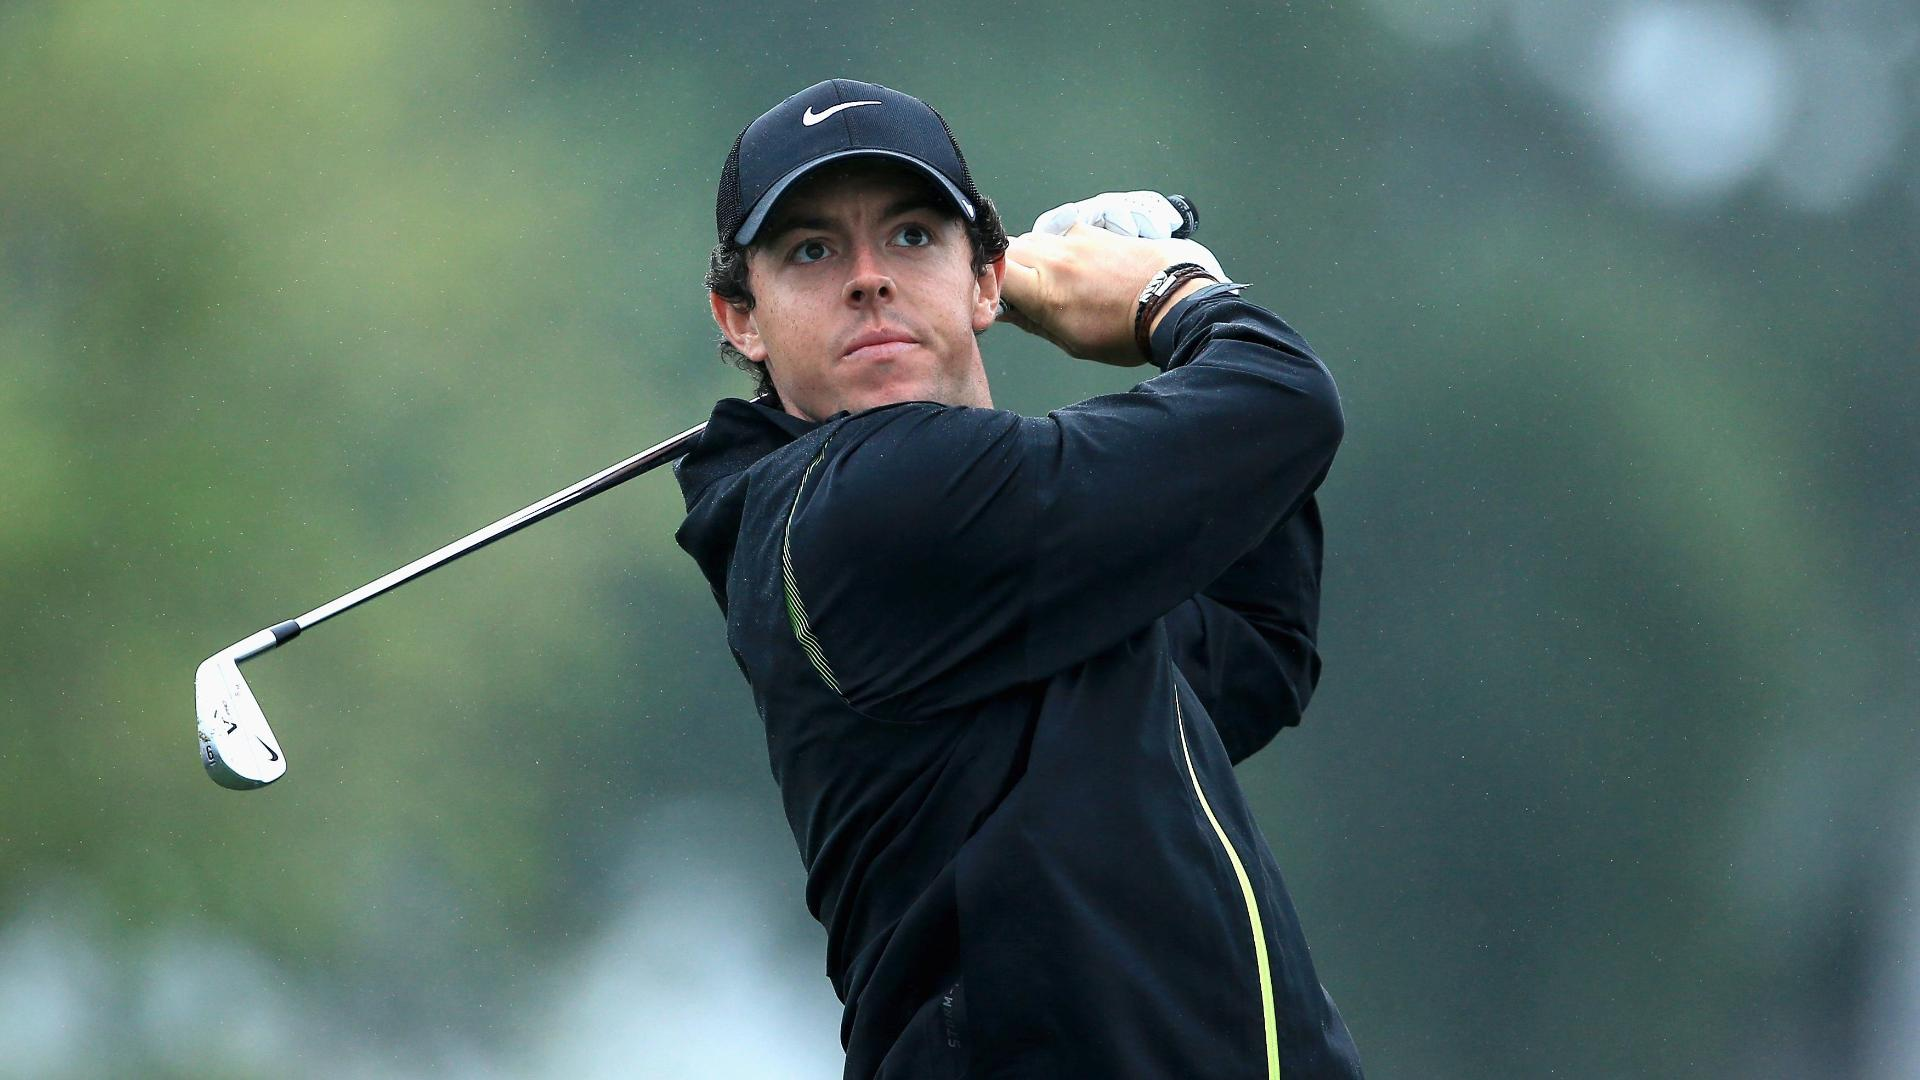 McIlroy Rusty, Projected To Miss Cut